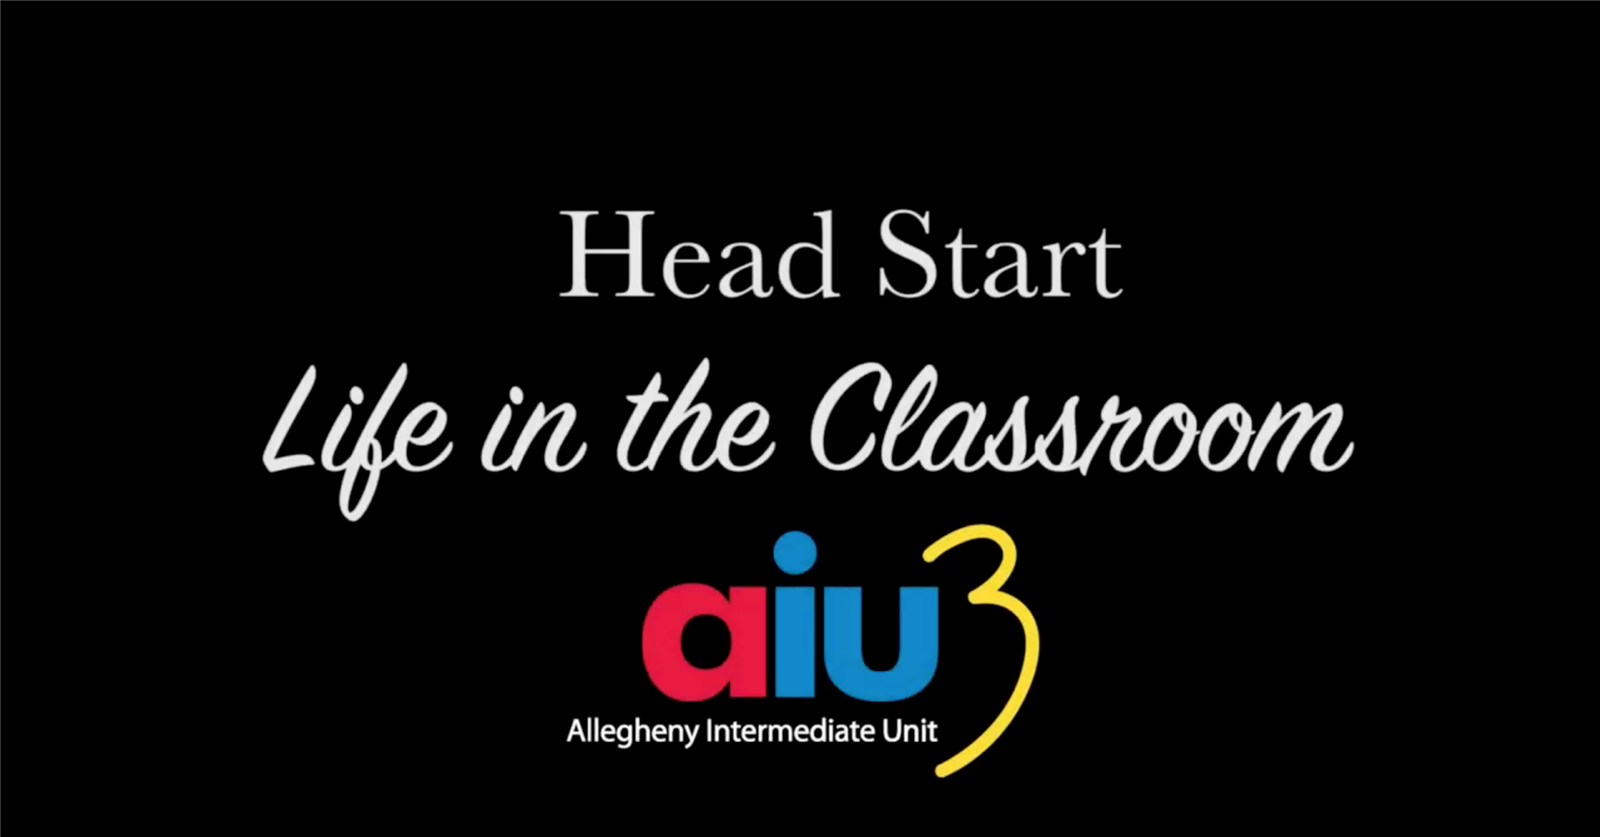 Head Start: Life in the Classroom